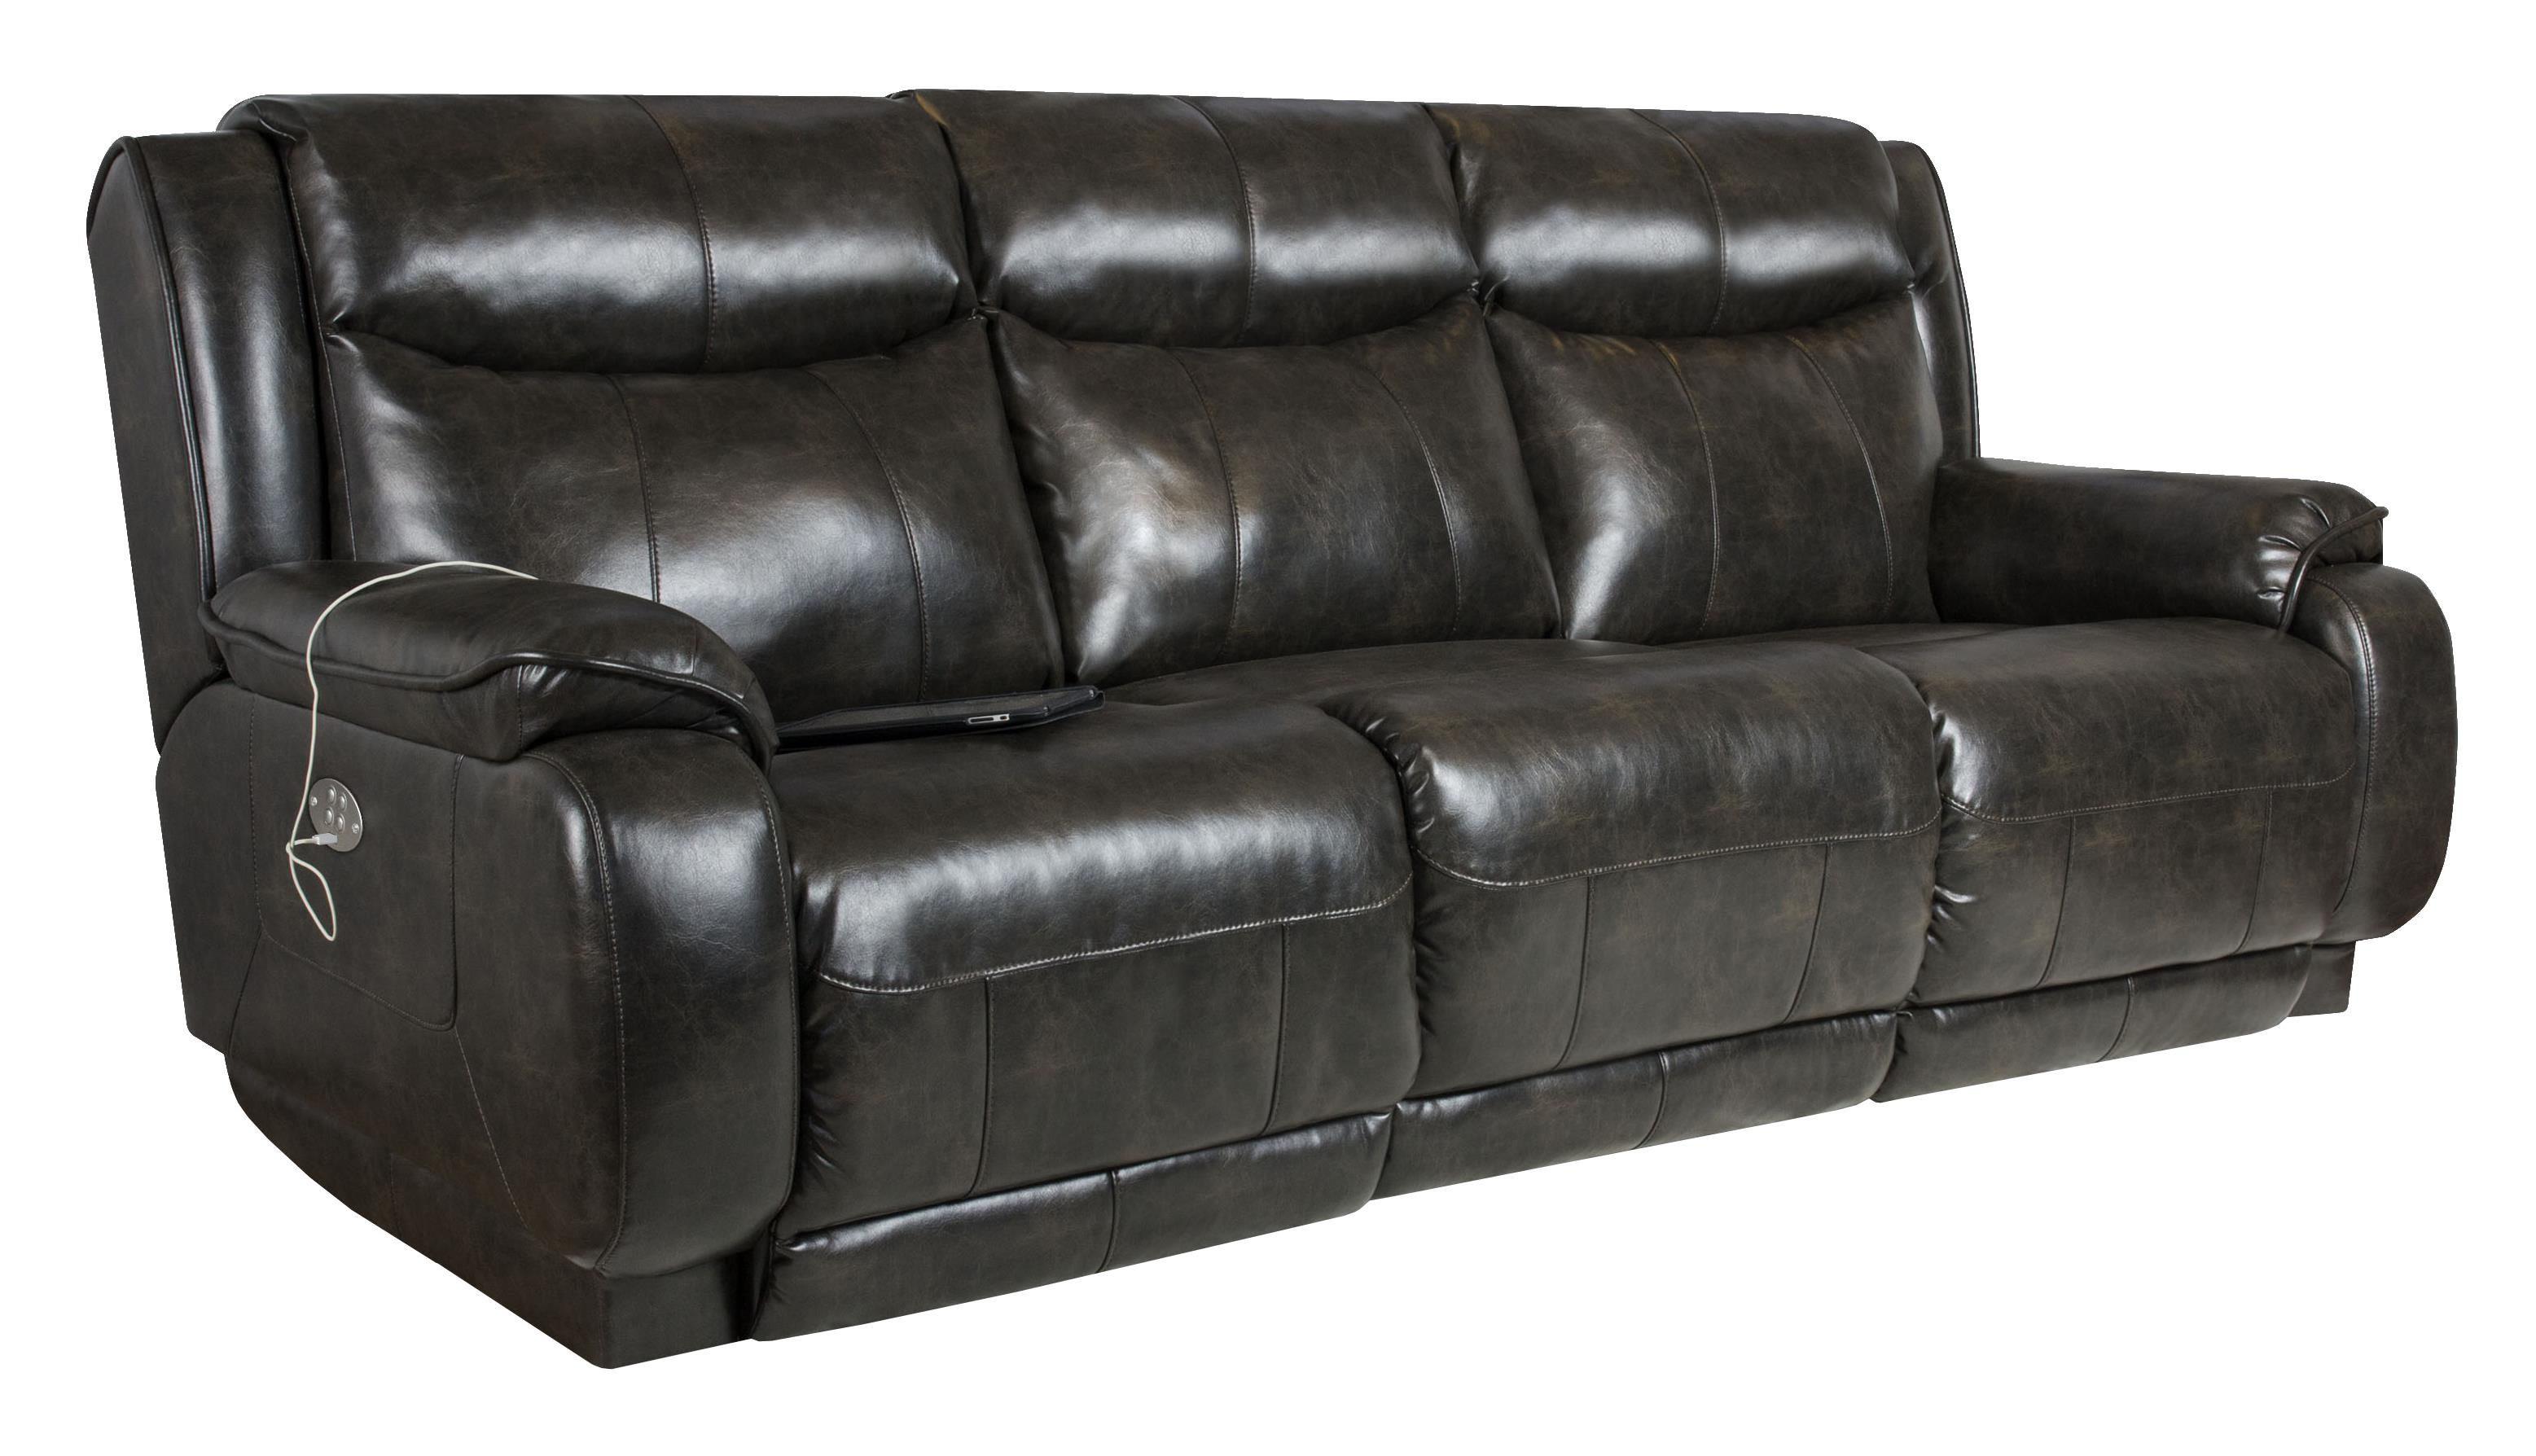 Marvelous Double Reclining Sofa With Power Headrest